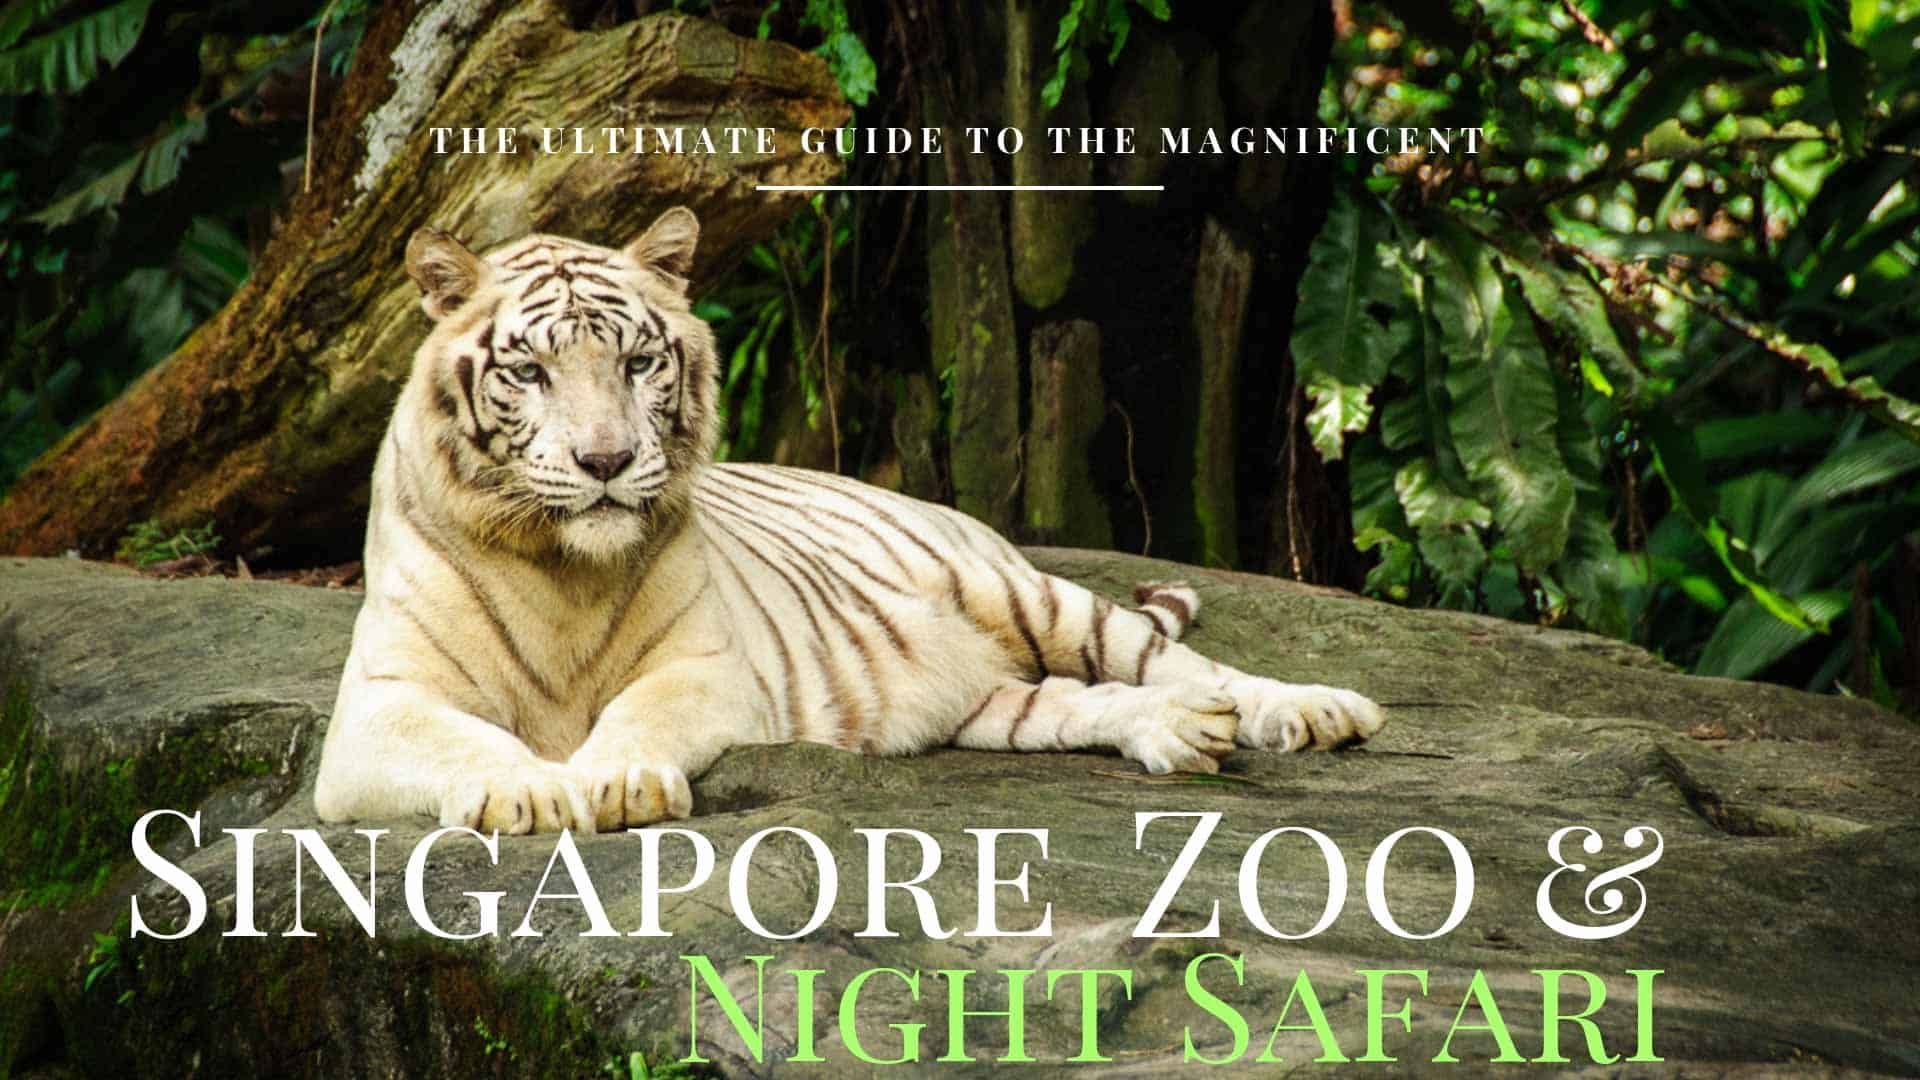 The Ultimate Guide To Singapore Zoo, River Safari & Night Safari